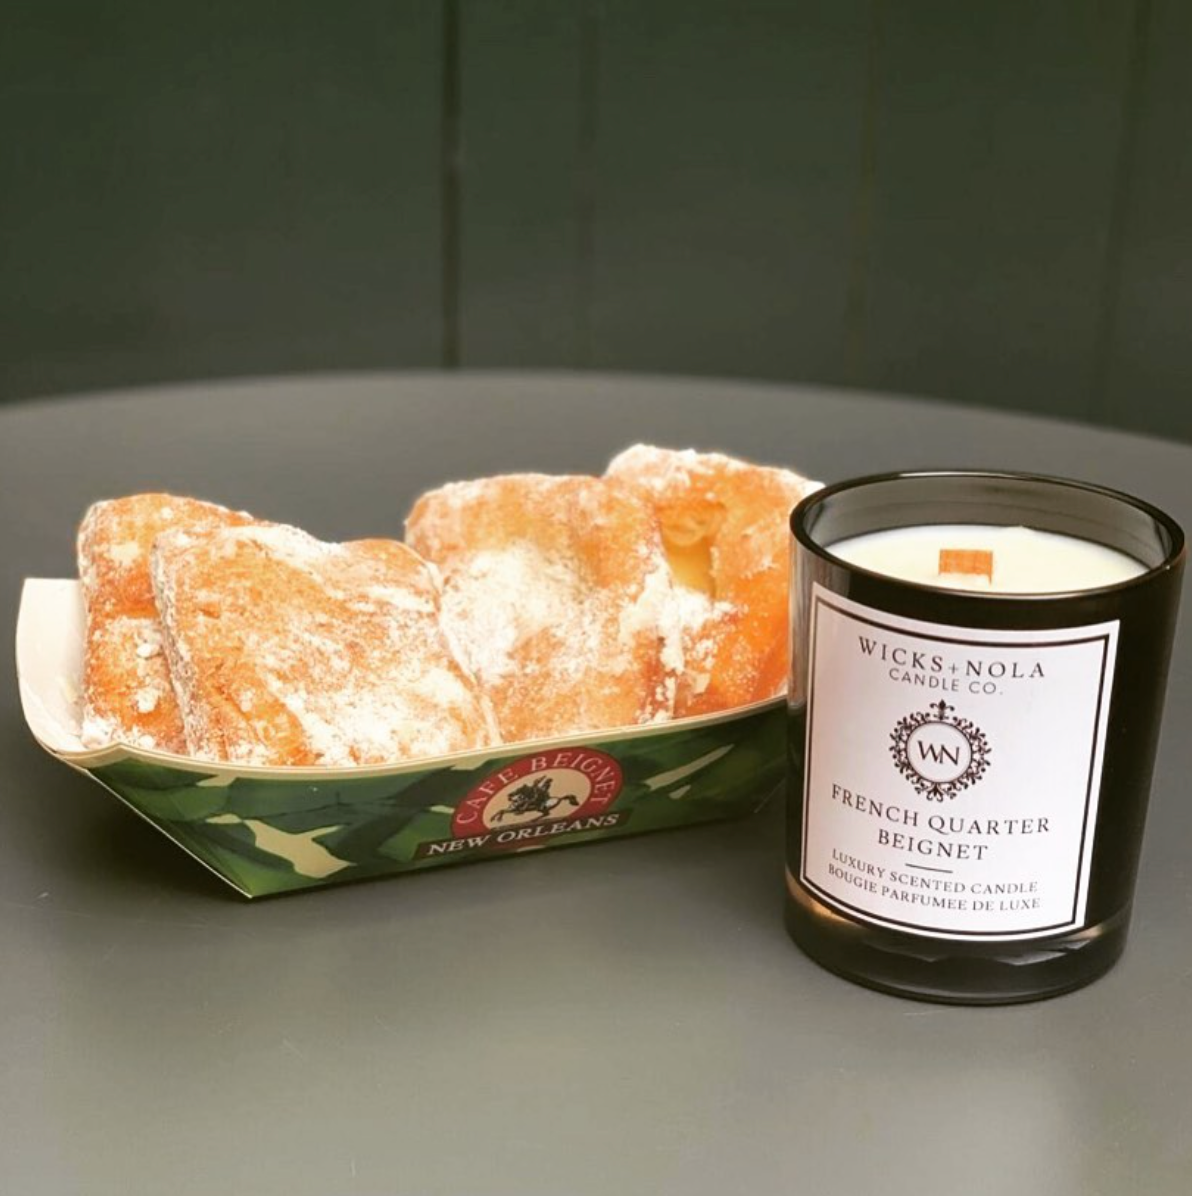 The French Quarter Beignet candle is displayed next to a serving of beignets